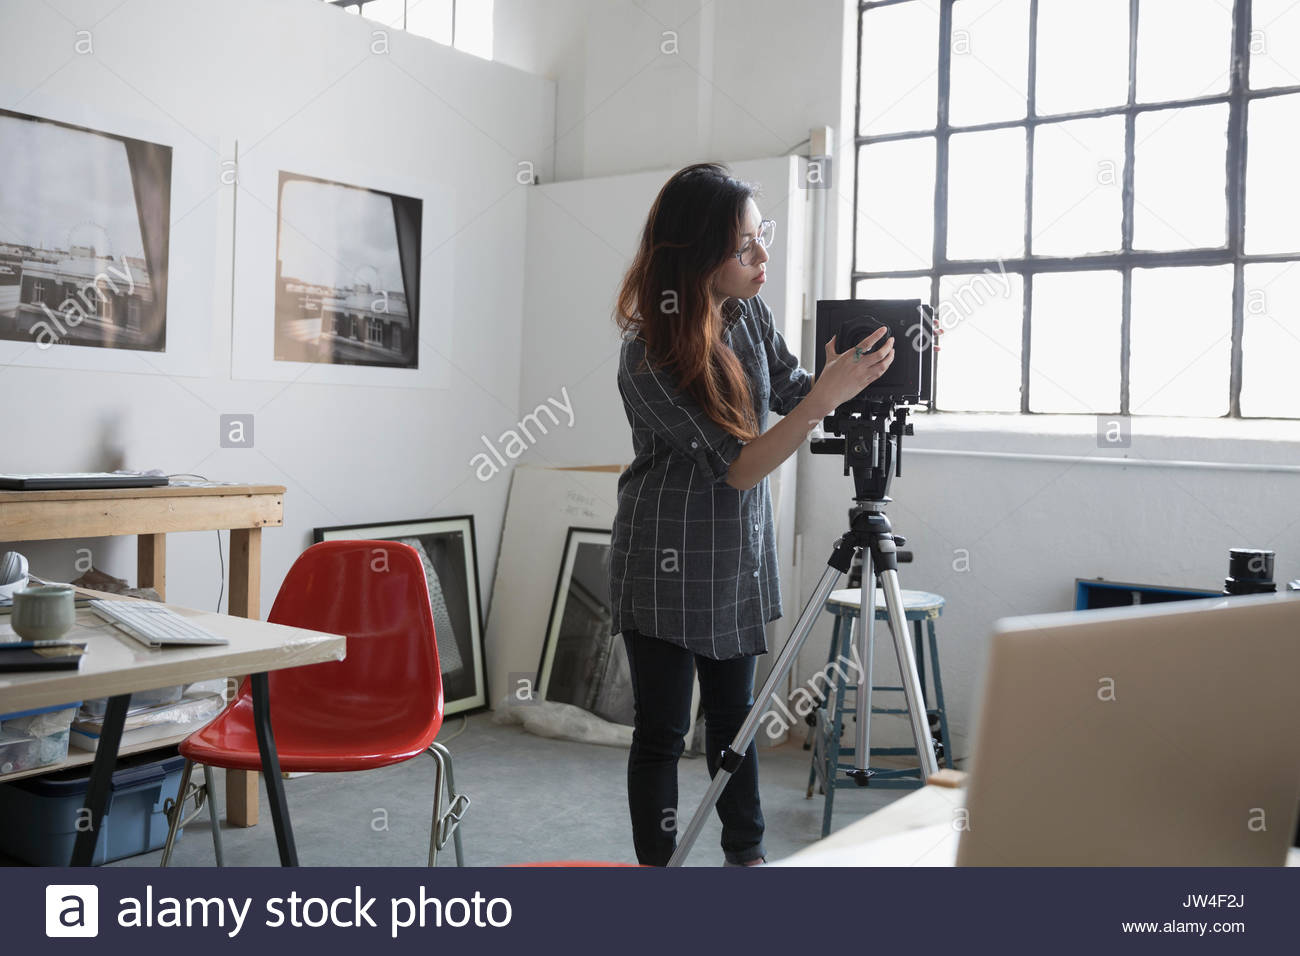 Female photographer adjusting camera lens in art studio - Stock Image